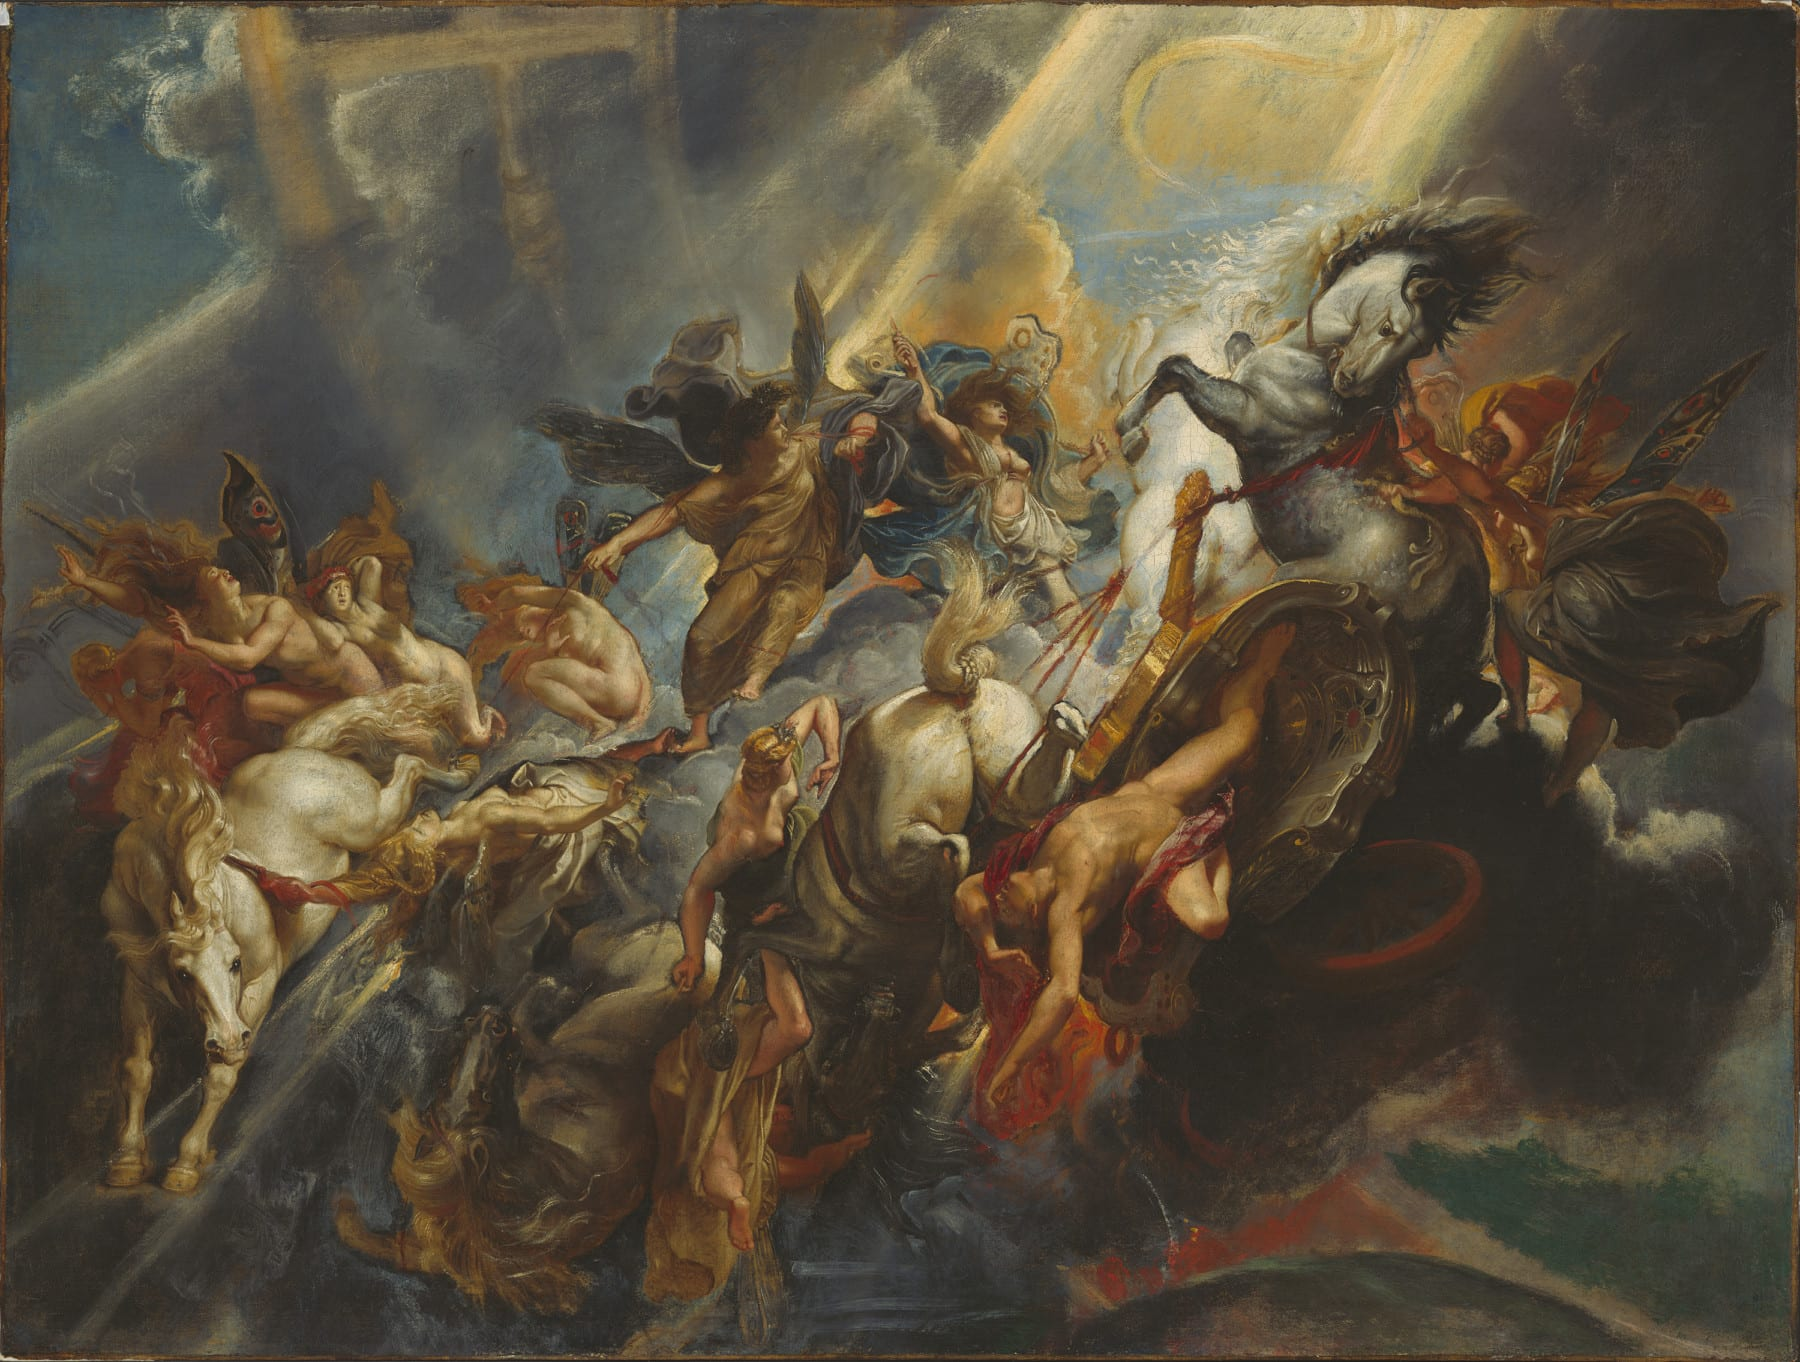 Rubens 1604-05 The-Fall-of-Phaeton NGA